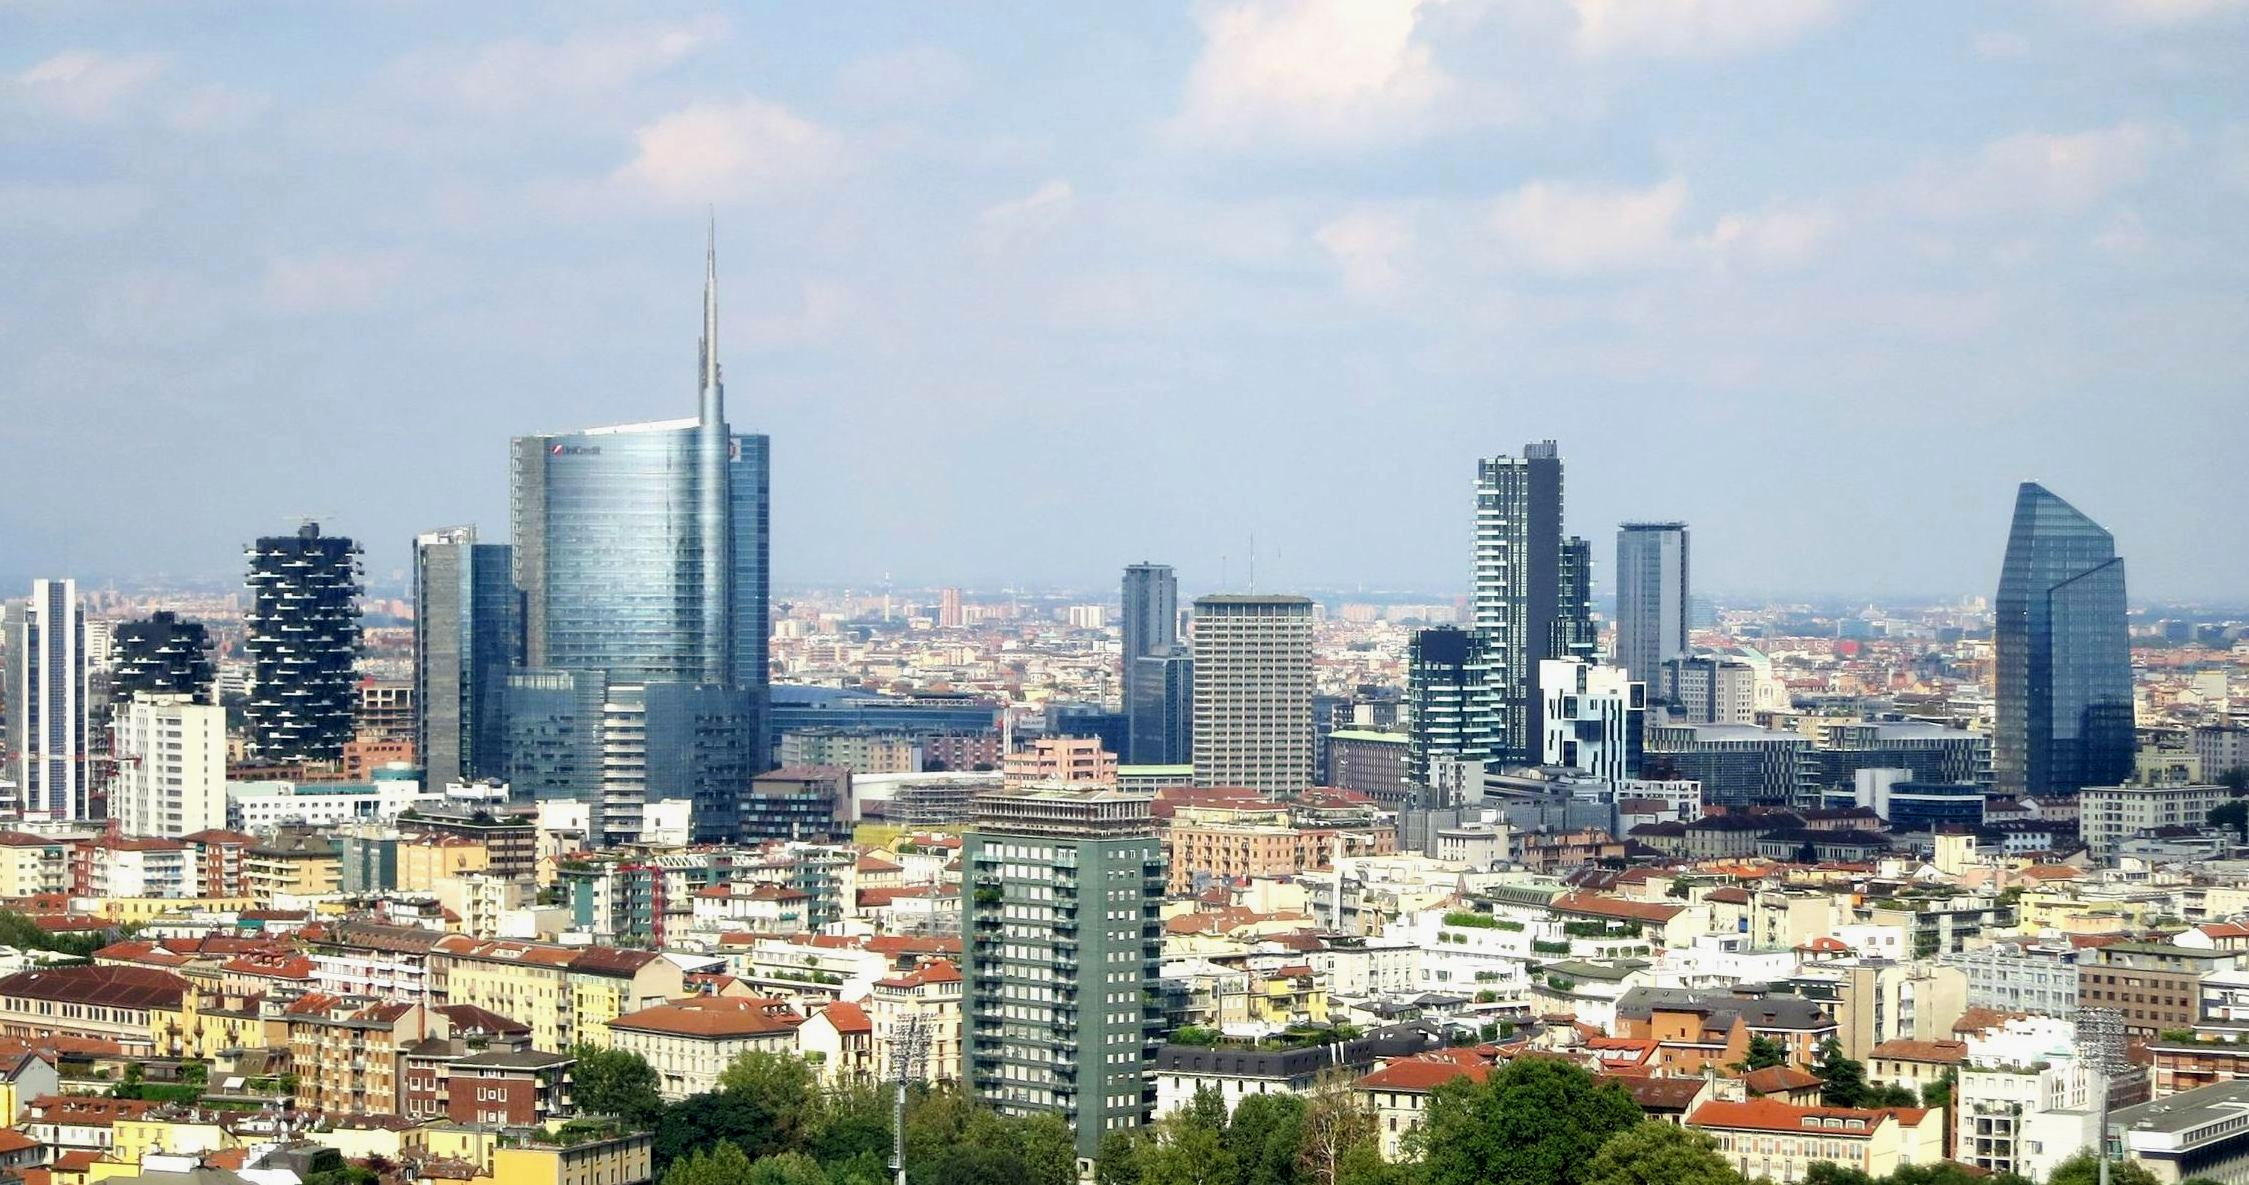 Porta Nuova Milan Rises Guiding Architects The Skyline Of New